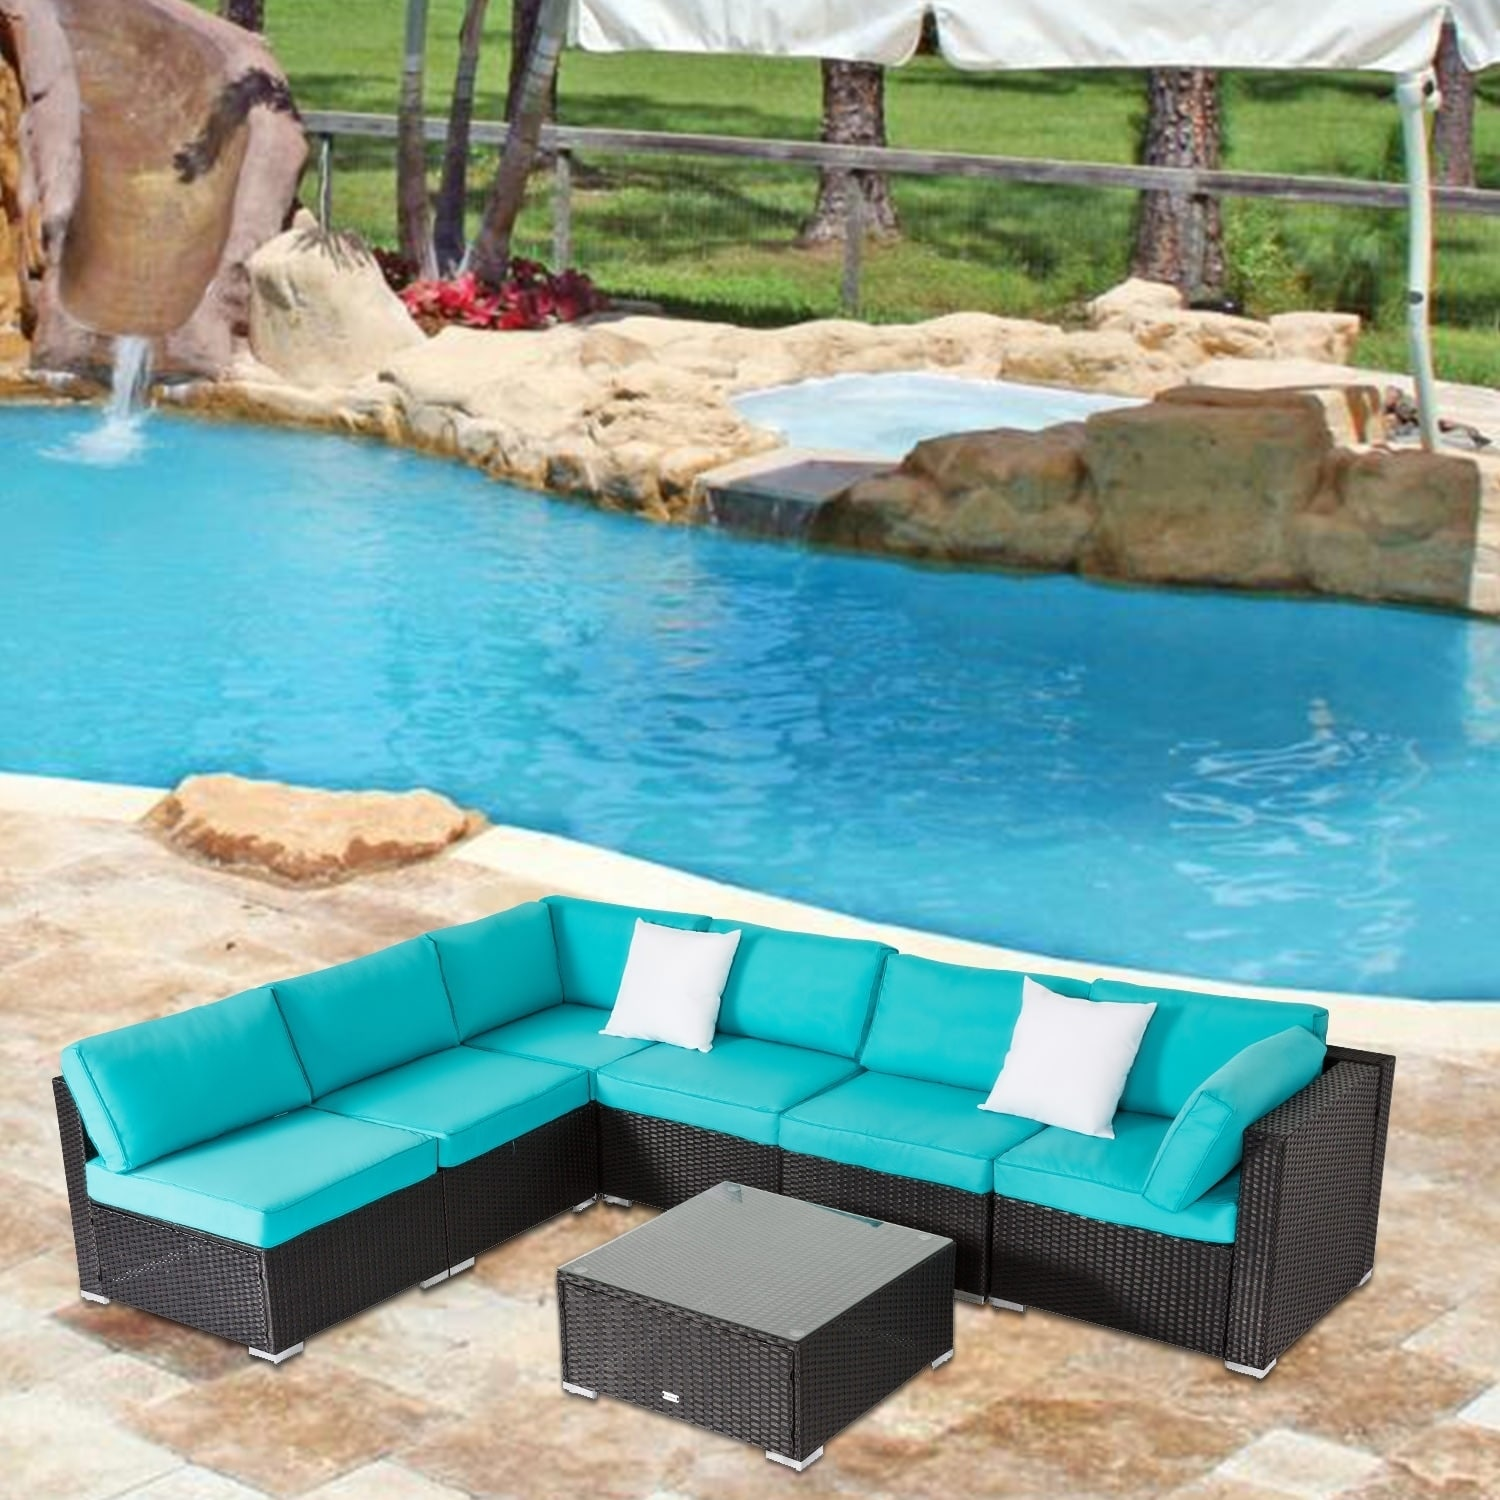 Kinbor 7 piece all weather rattan sectional sofa set patio furniture set cushioned wicker sofa set